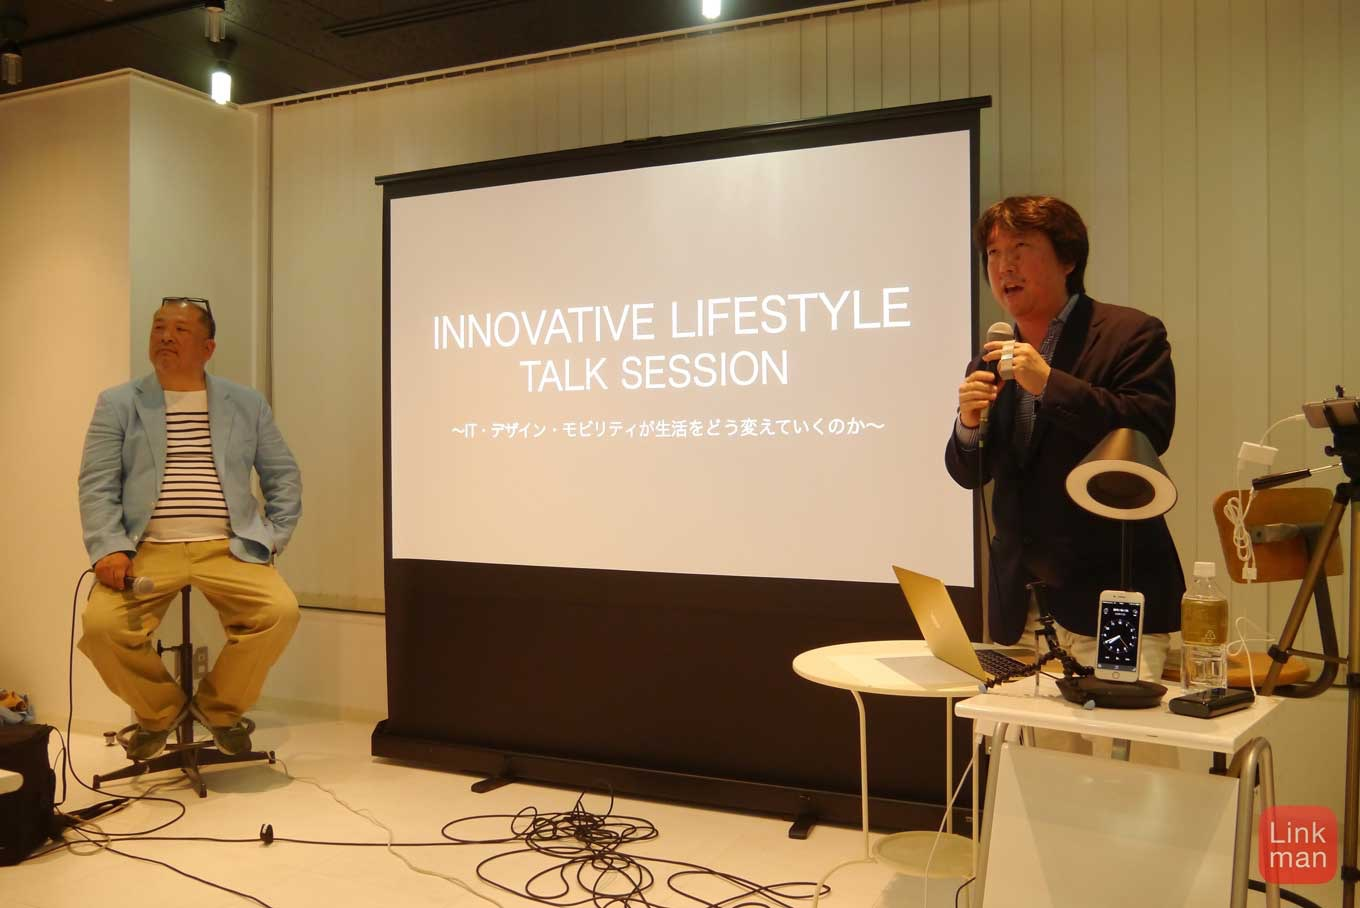 Innovativelifstyle 02